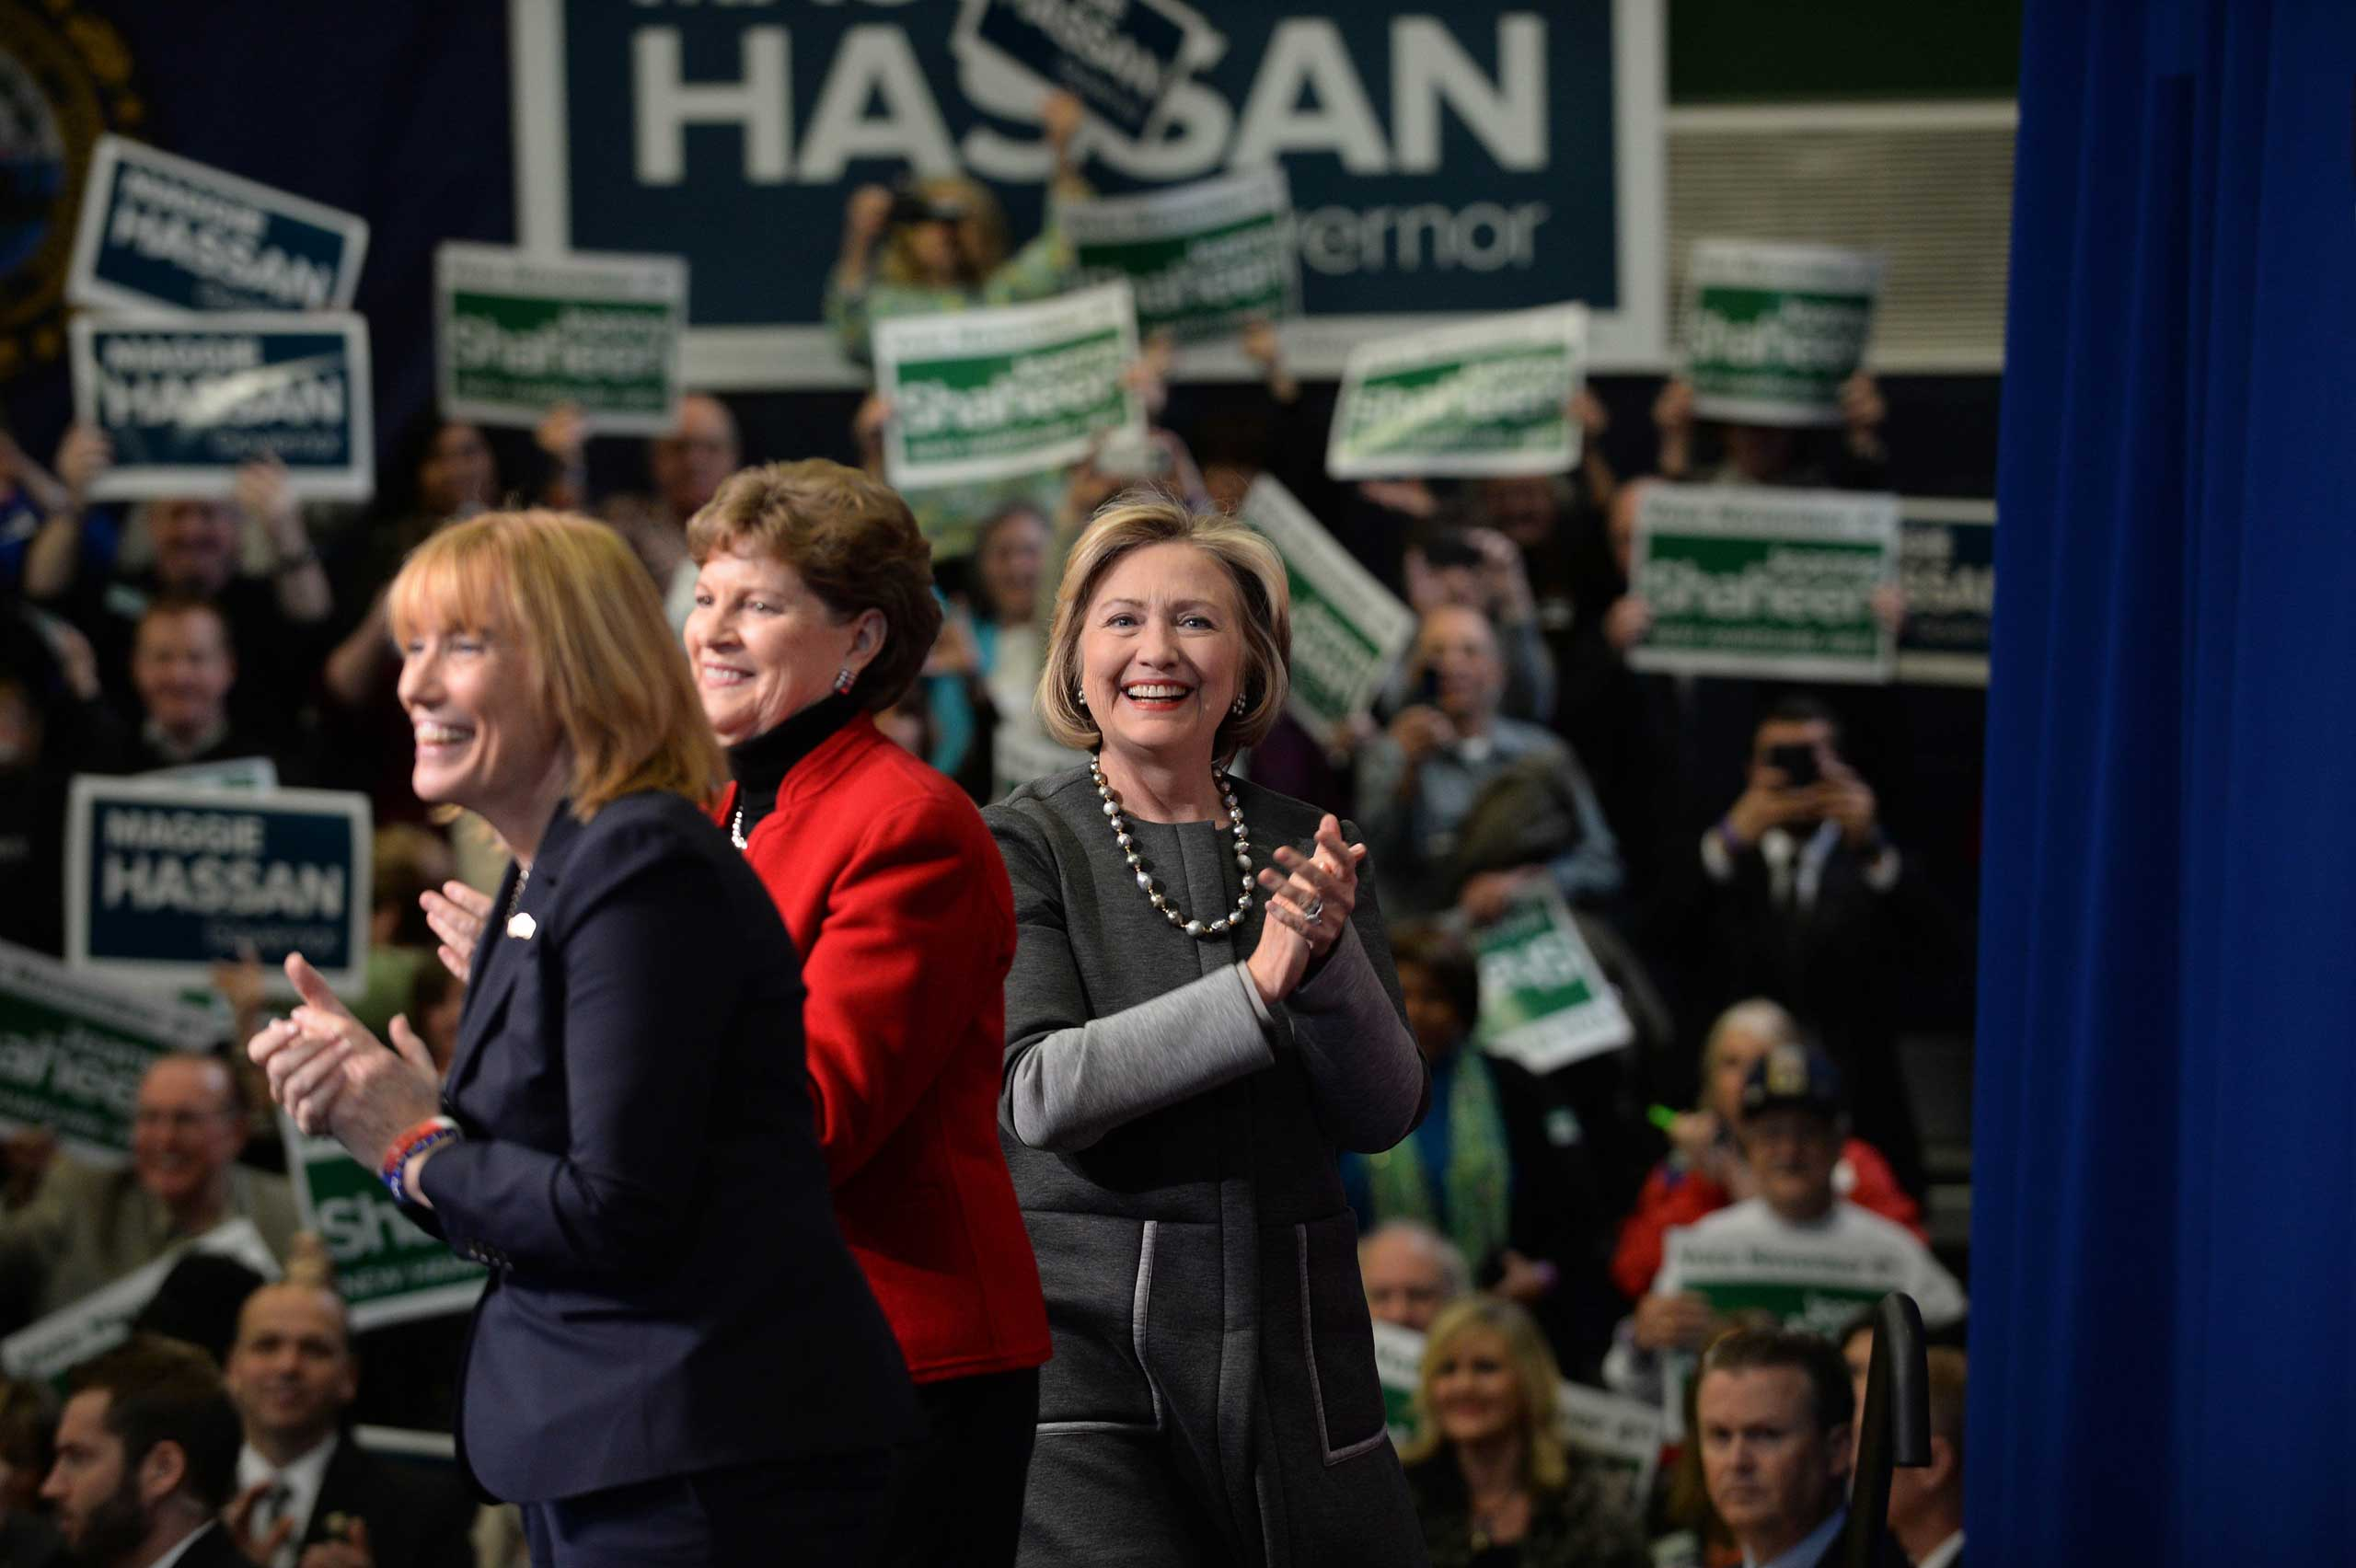 Former U.S. Secretary of State Hillary Clinton (R) campaigns with U.S. Senator Jeanne Shaheen (D-NH) and New Hampshire Governor Maggie Hassan (L) at Nashua Community College in Nashua, N.H. on Nov. 2, 2014.